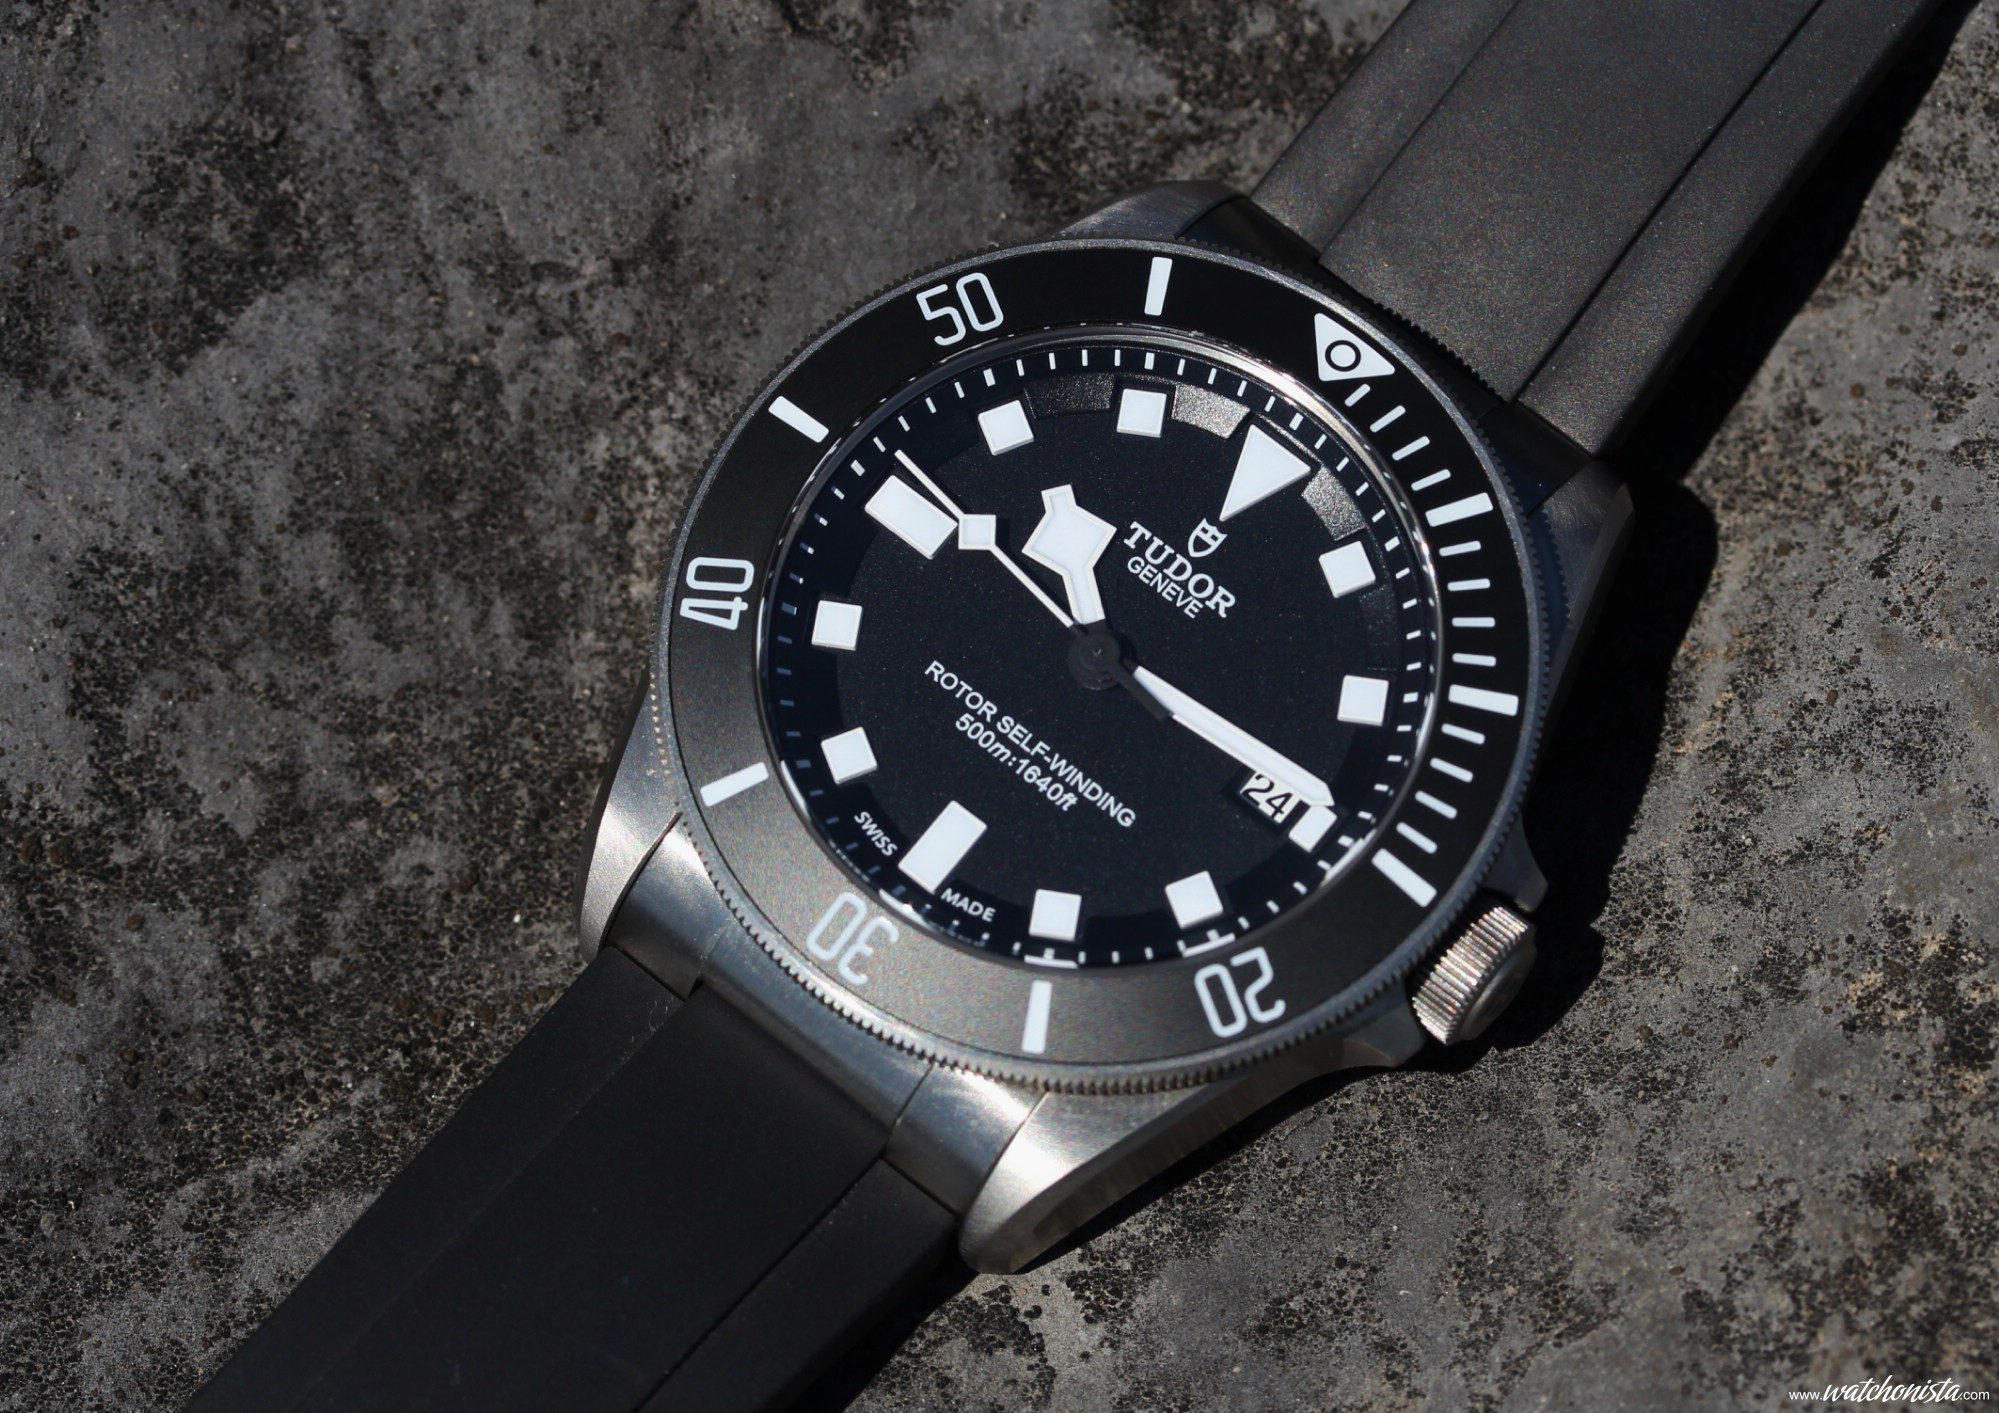 Tudor pelagos ultimate toolwatch reviews and articles - Tudor dive watch price ...